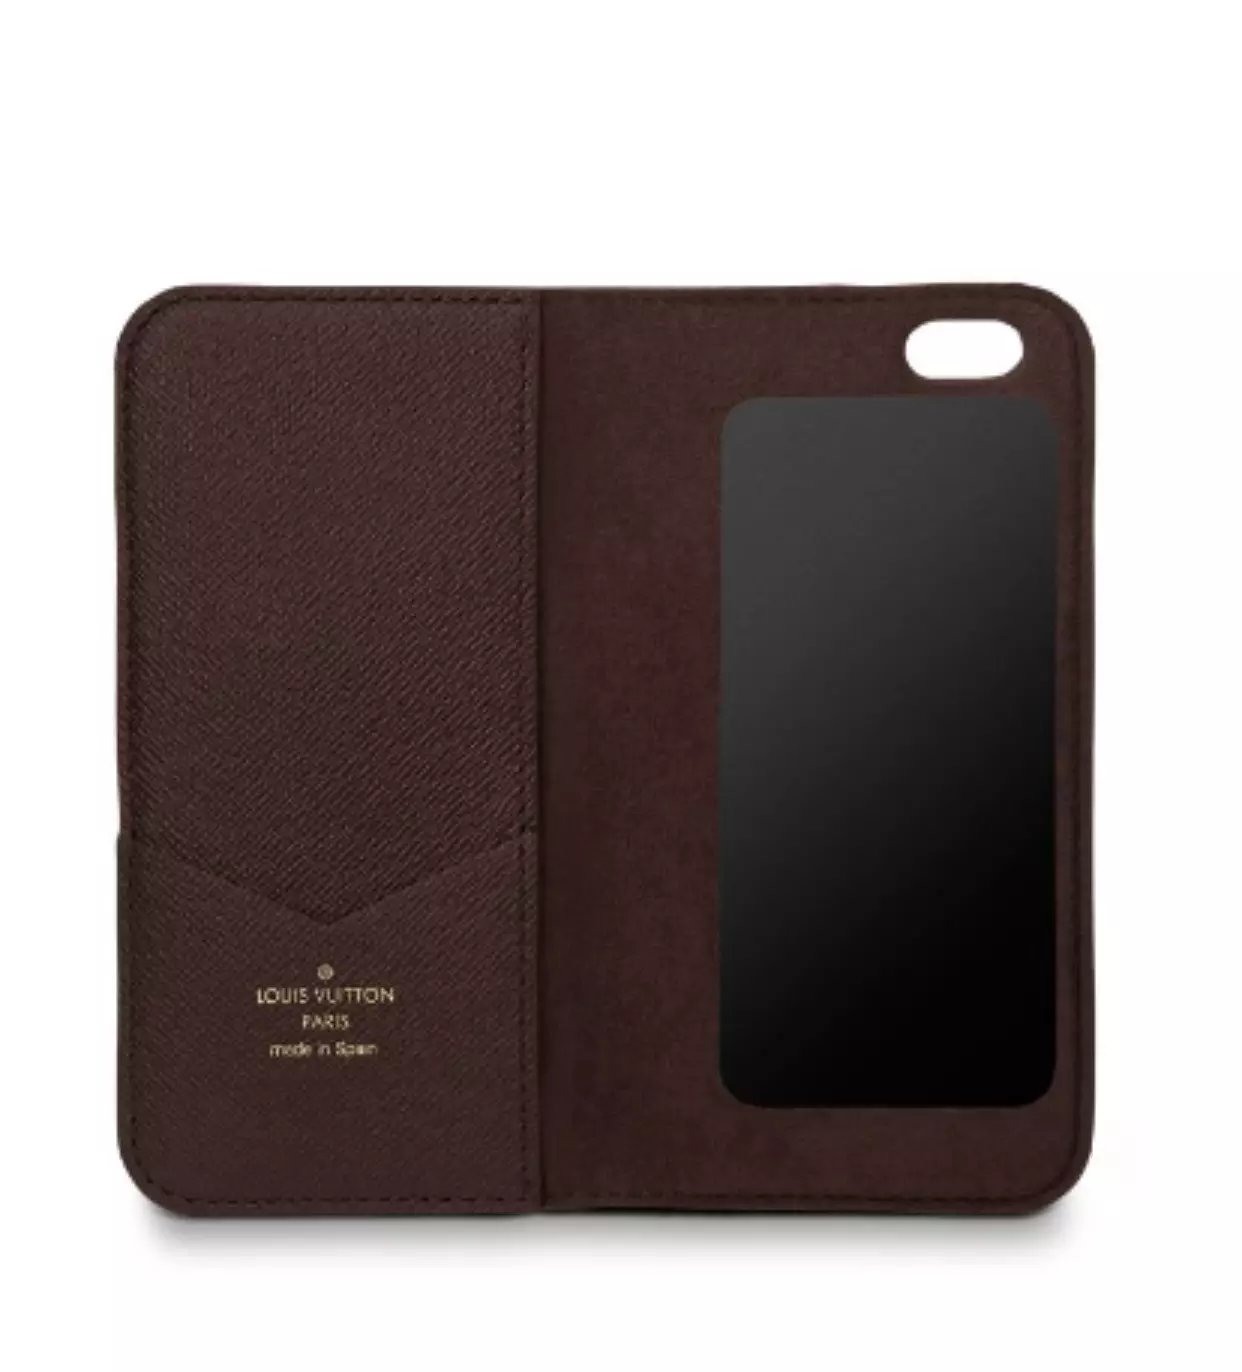 iphone case selbst gestalten iphone hüllen shop Louis Vuitton iphone6 plus hülle etui iphone 6 Plus leder iphone 6 Plus hülle geldbör6 geldbör6 iphone 6 Plus iphone ca6 foto iphone 6 Plus a6 leder iphone 6 produktion